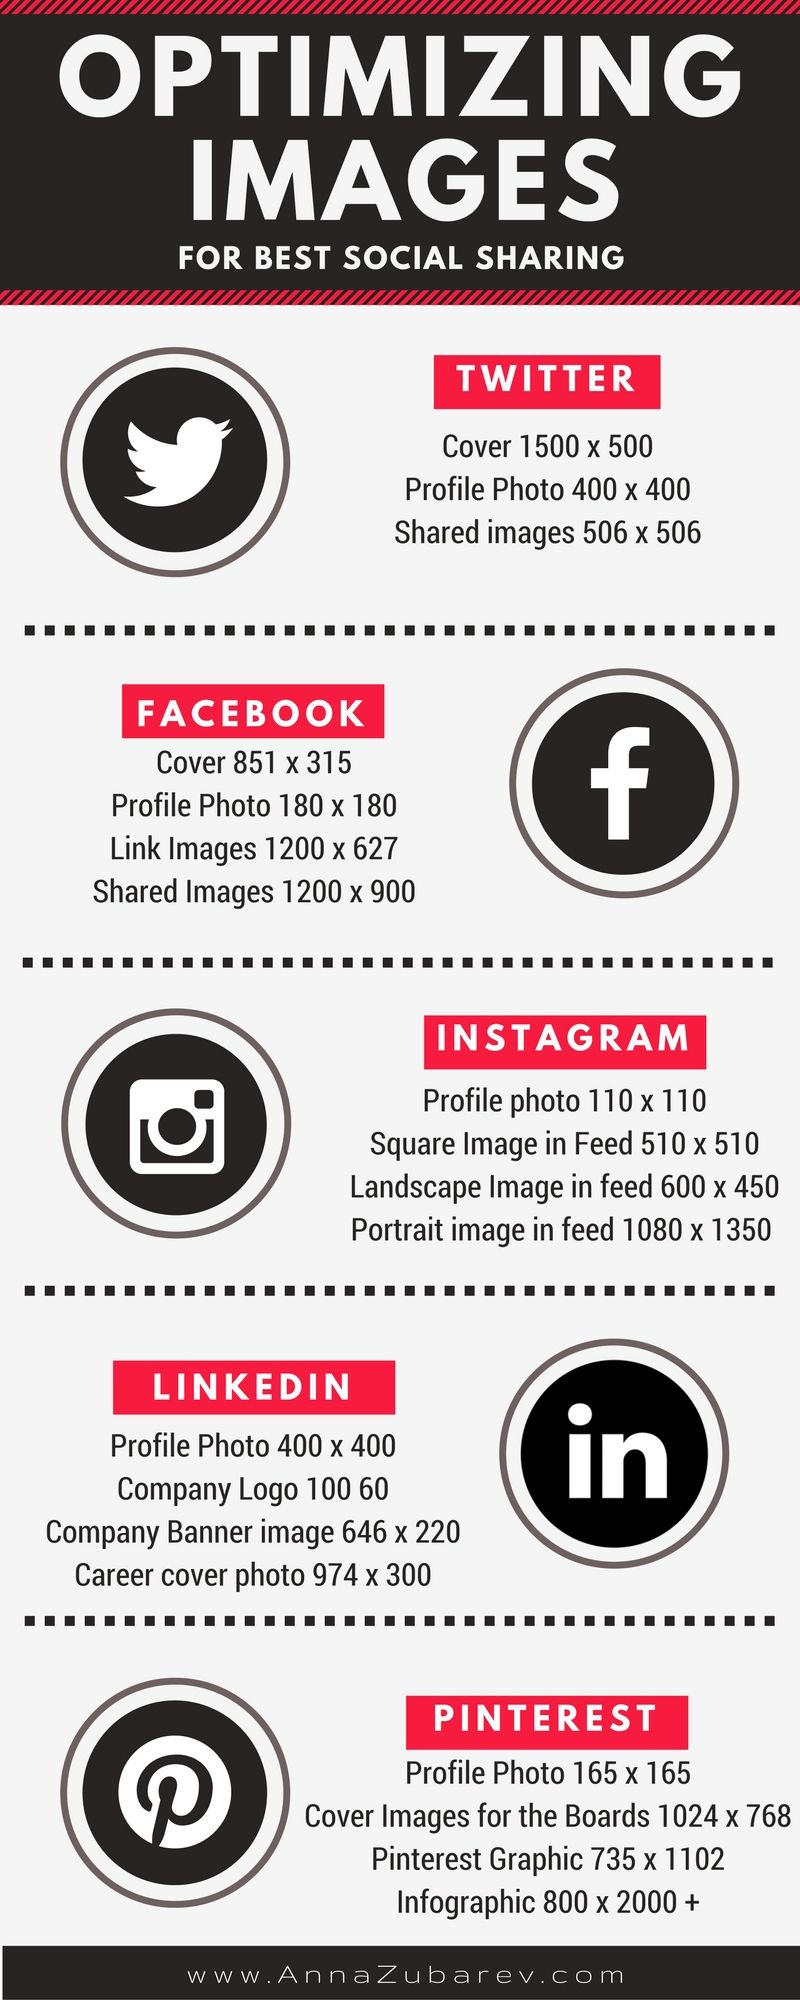 In this latest blog post, I am sharing my ultimate cheat sheet on how to properly optimize images for social sharing.  There comes that moment when you discover great content and want to Pin it and share it with your fellow Pinners. And then you click to pin and completely wrong image comes up if any for you to pin… what a bummer!   From small content creators to major influencers, I've seen it time-to-time this dilemma of incorrect optimized images for a blog. via @annazubarev via @http...